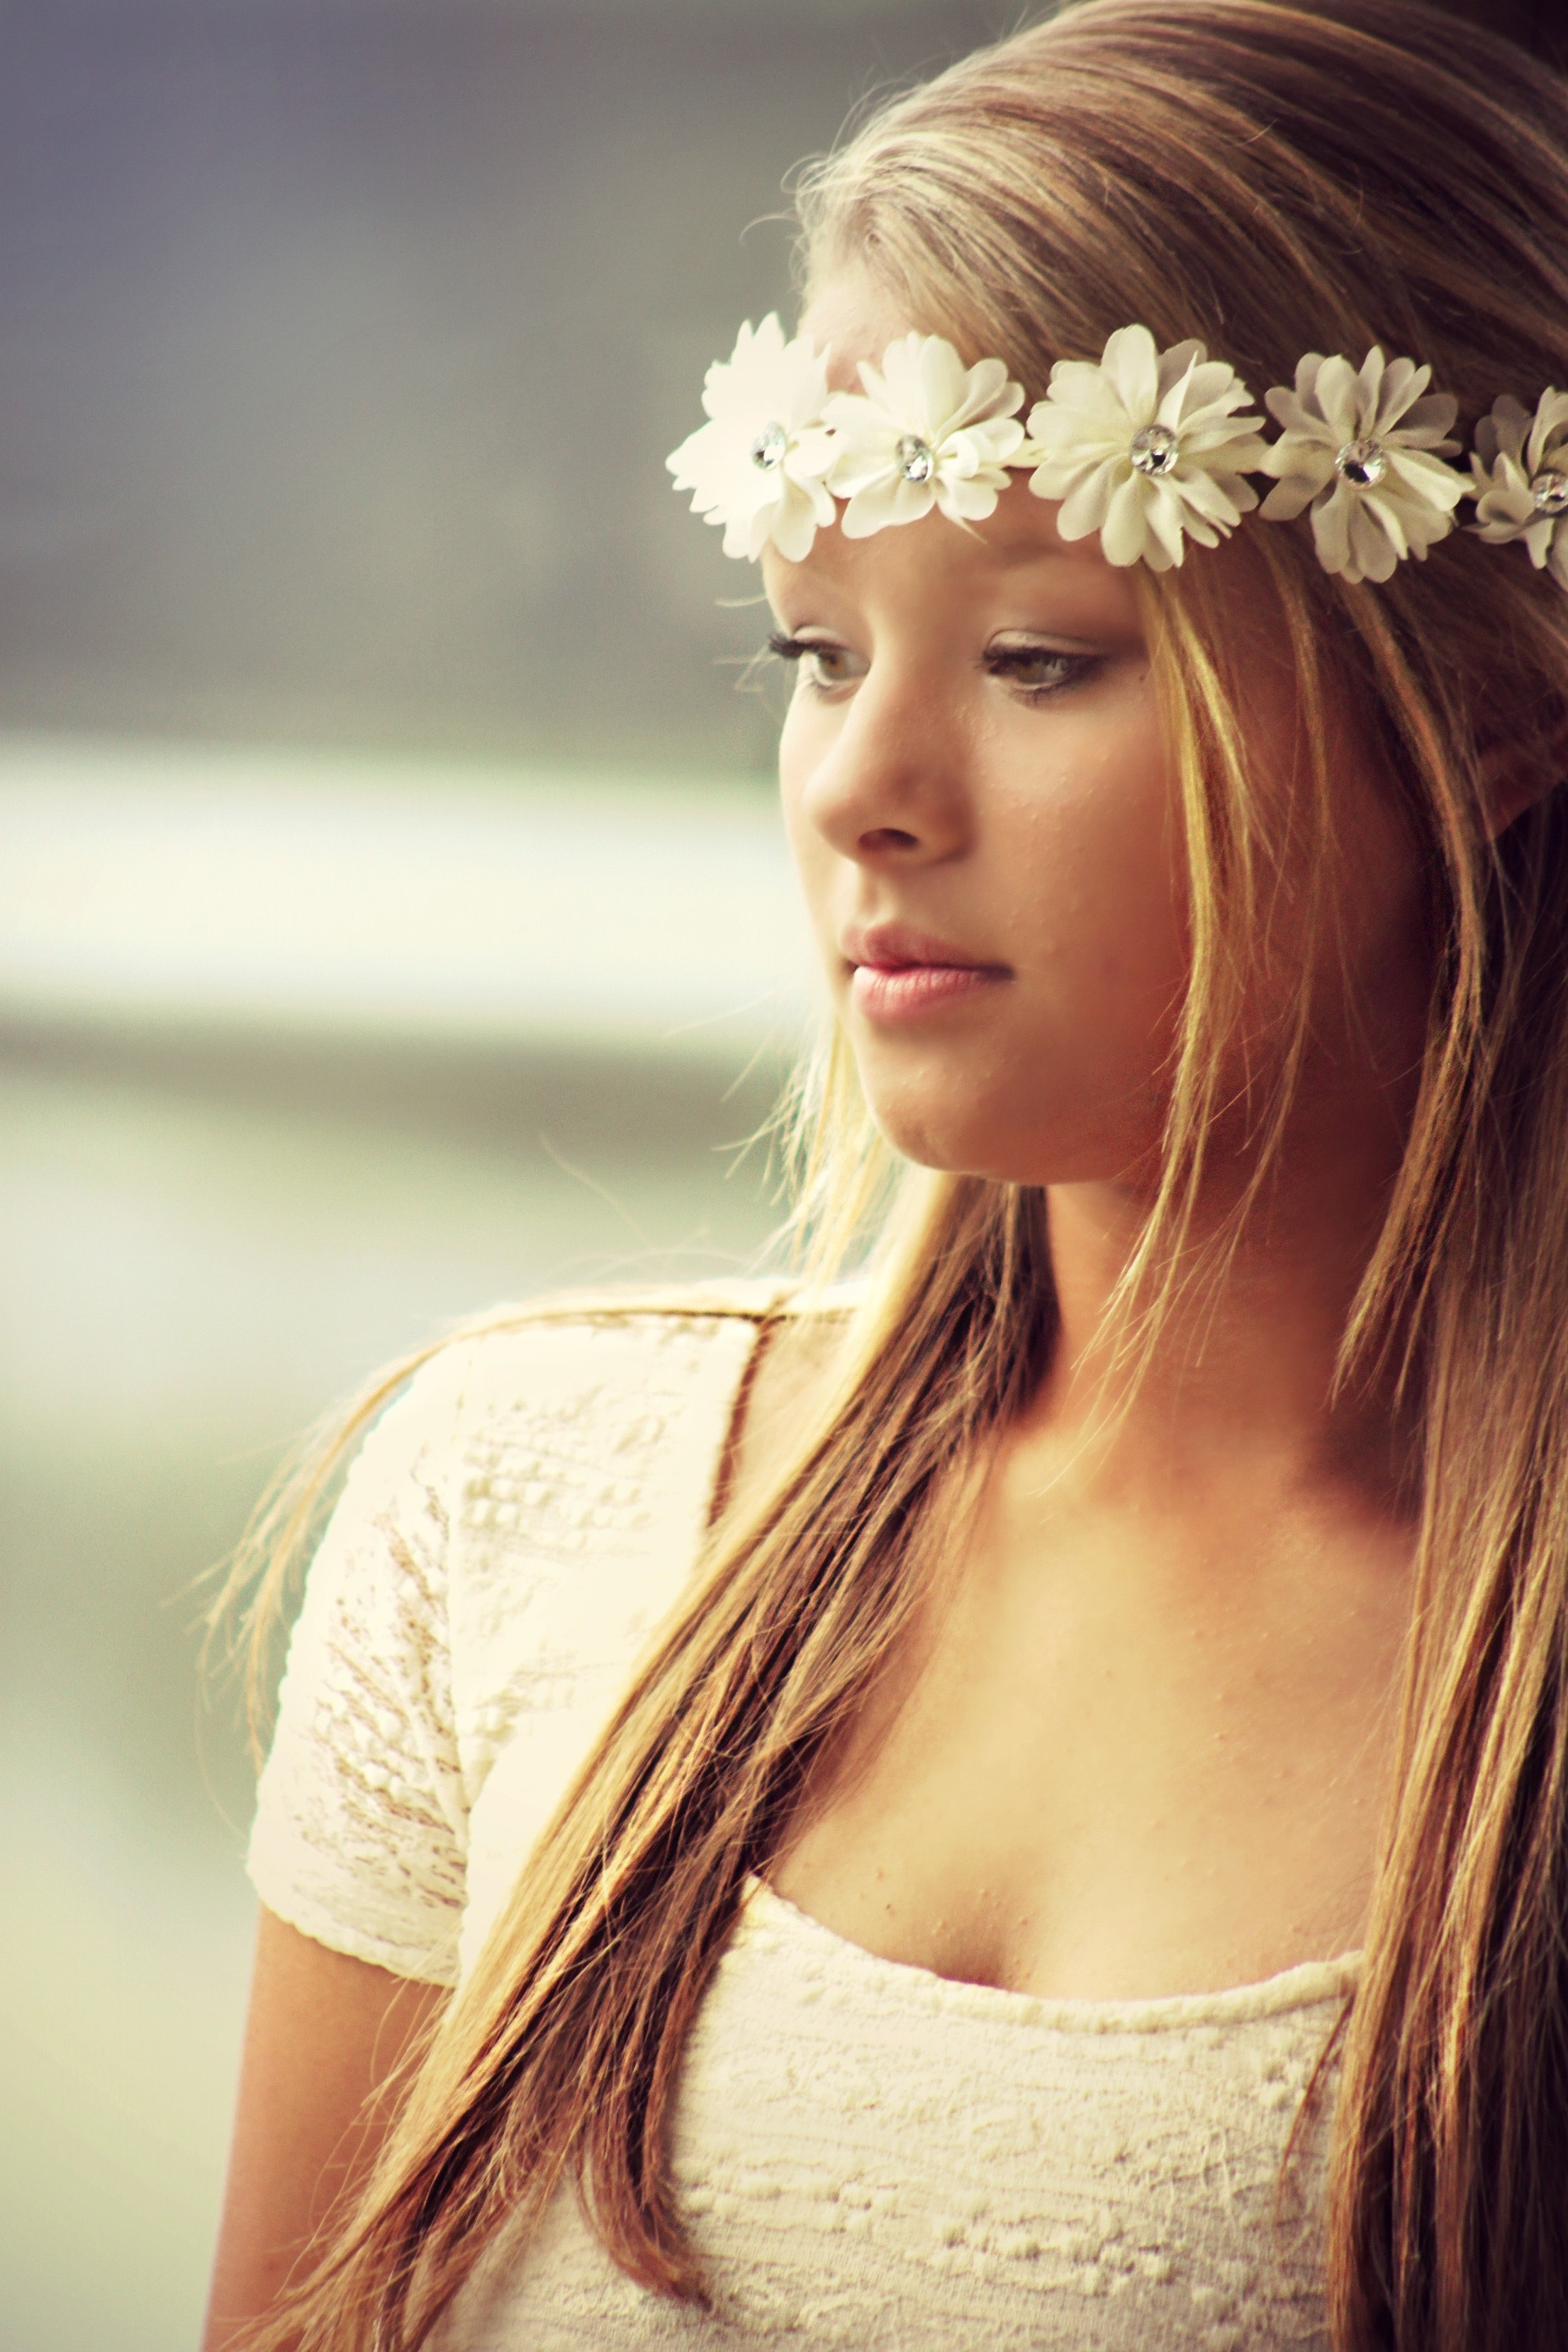 Woman Wearing Floral Headdress, Beautiful, Blond, Face, Fashion, HQ Photo